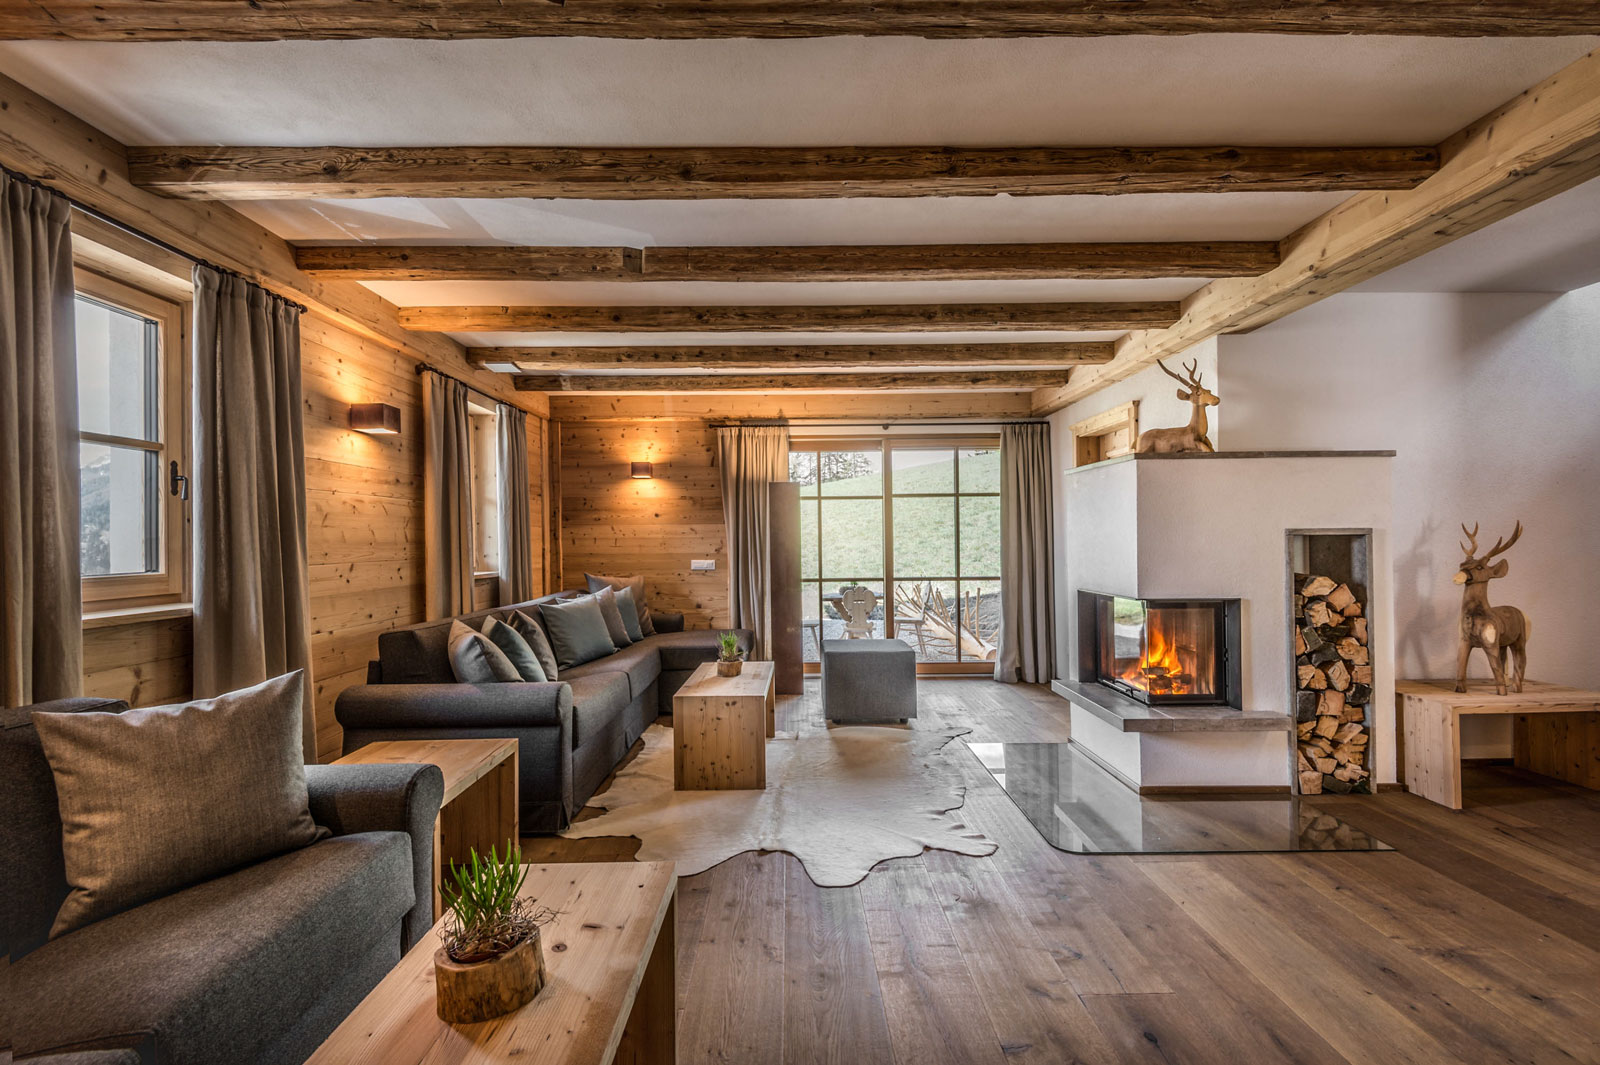 Charming Rustic Mountain Chalet Built In Typical Alpine Style